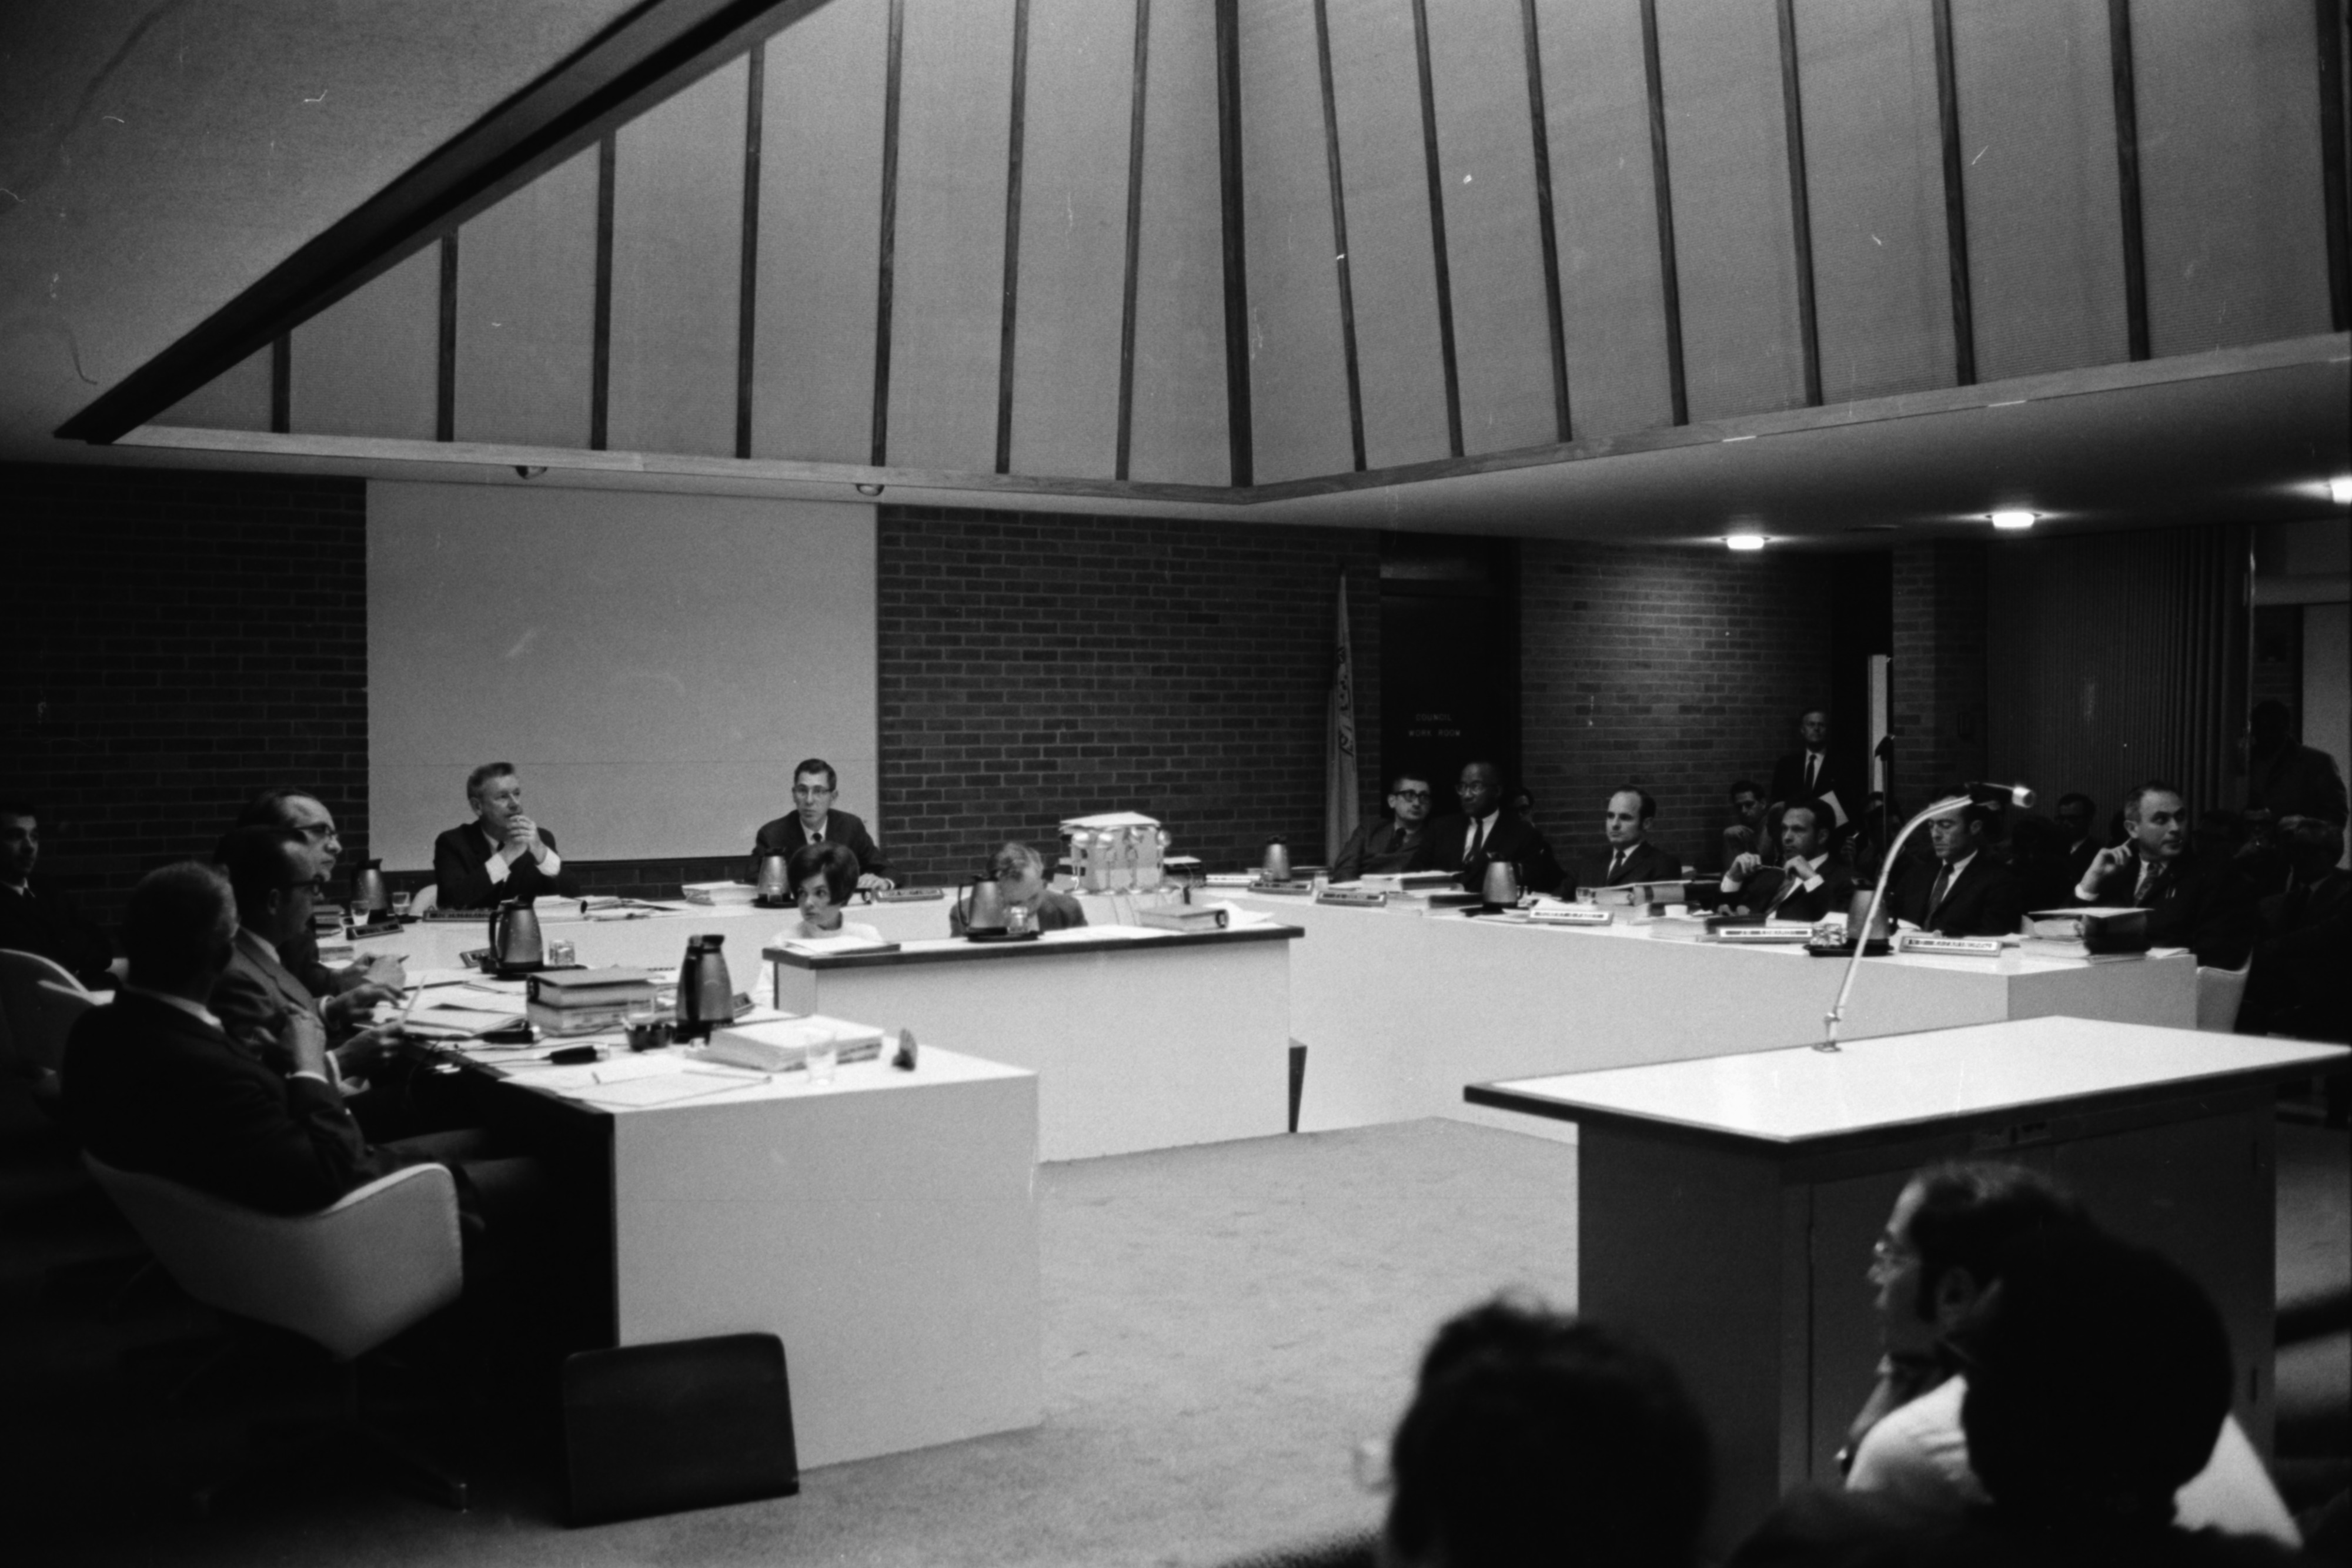 Ann Arbor's New City Council at Work, April 1969 image